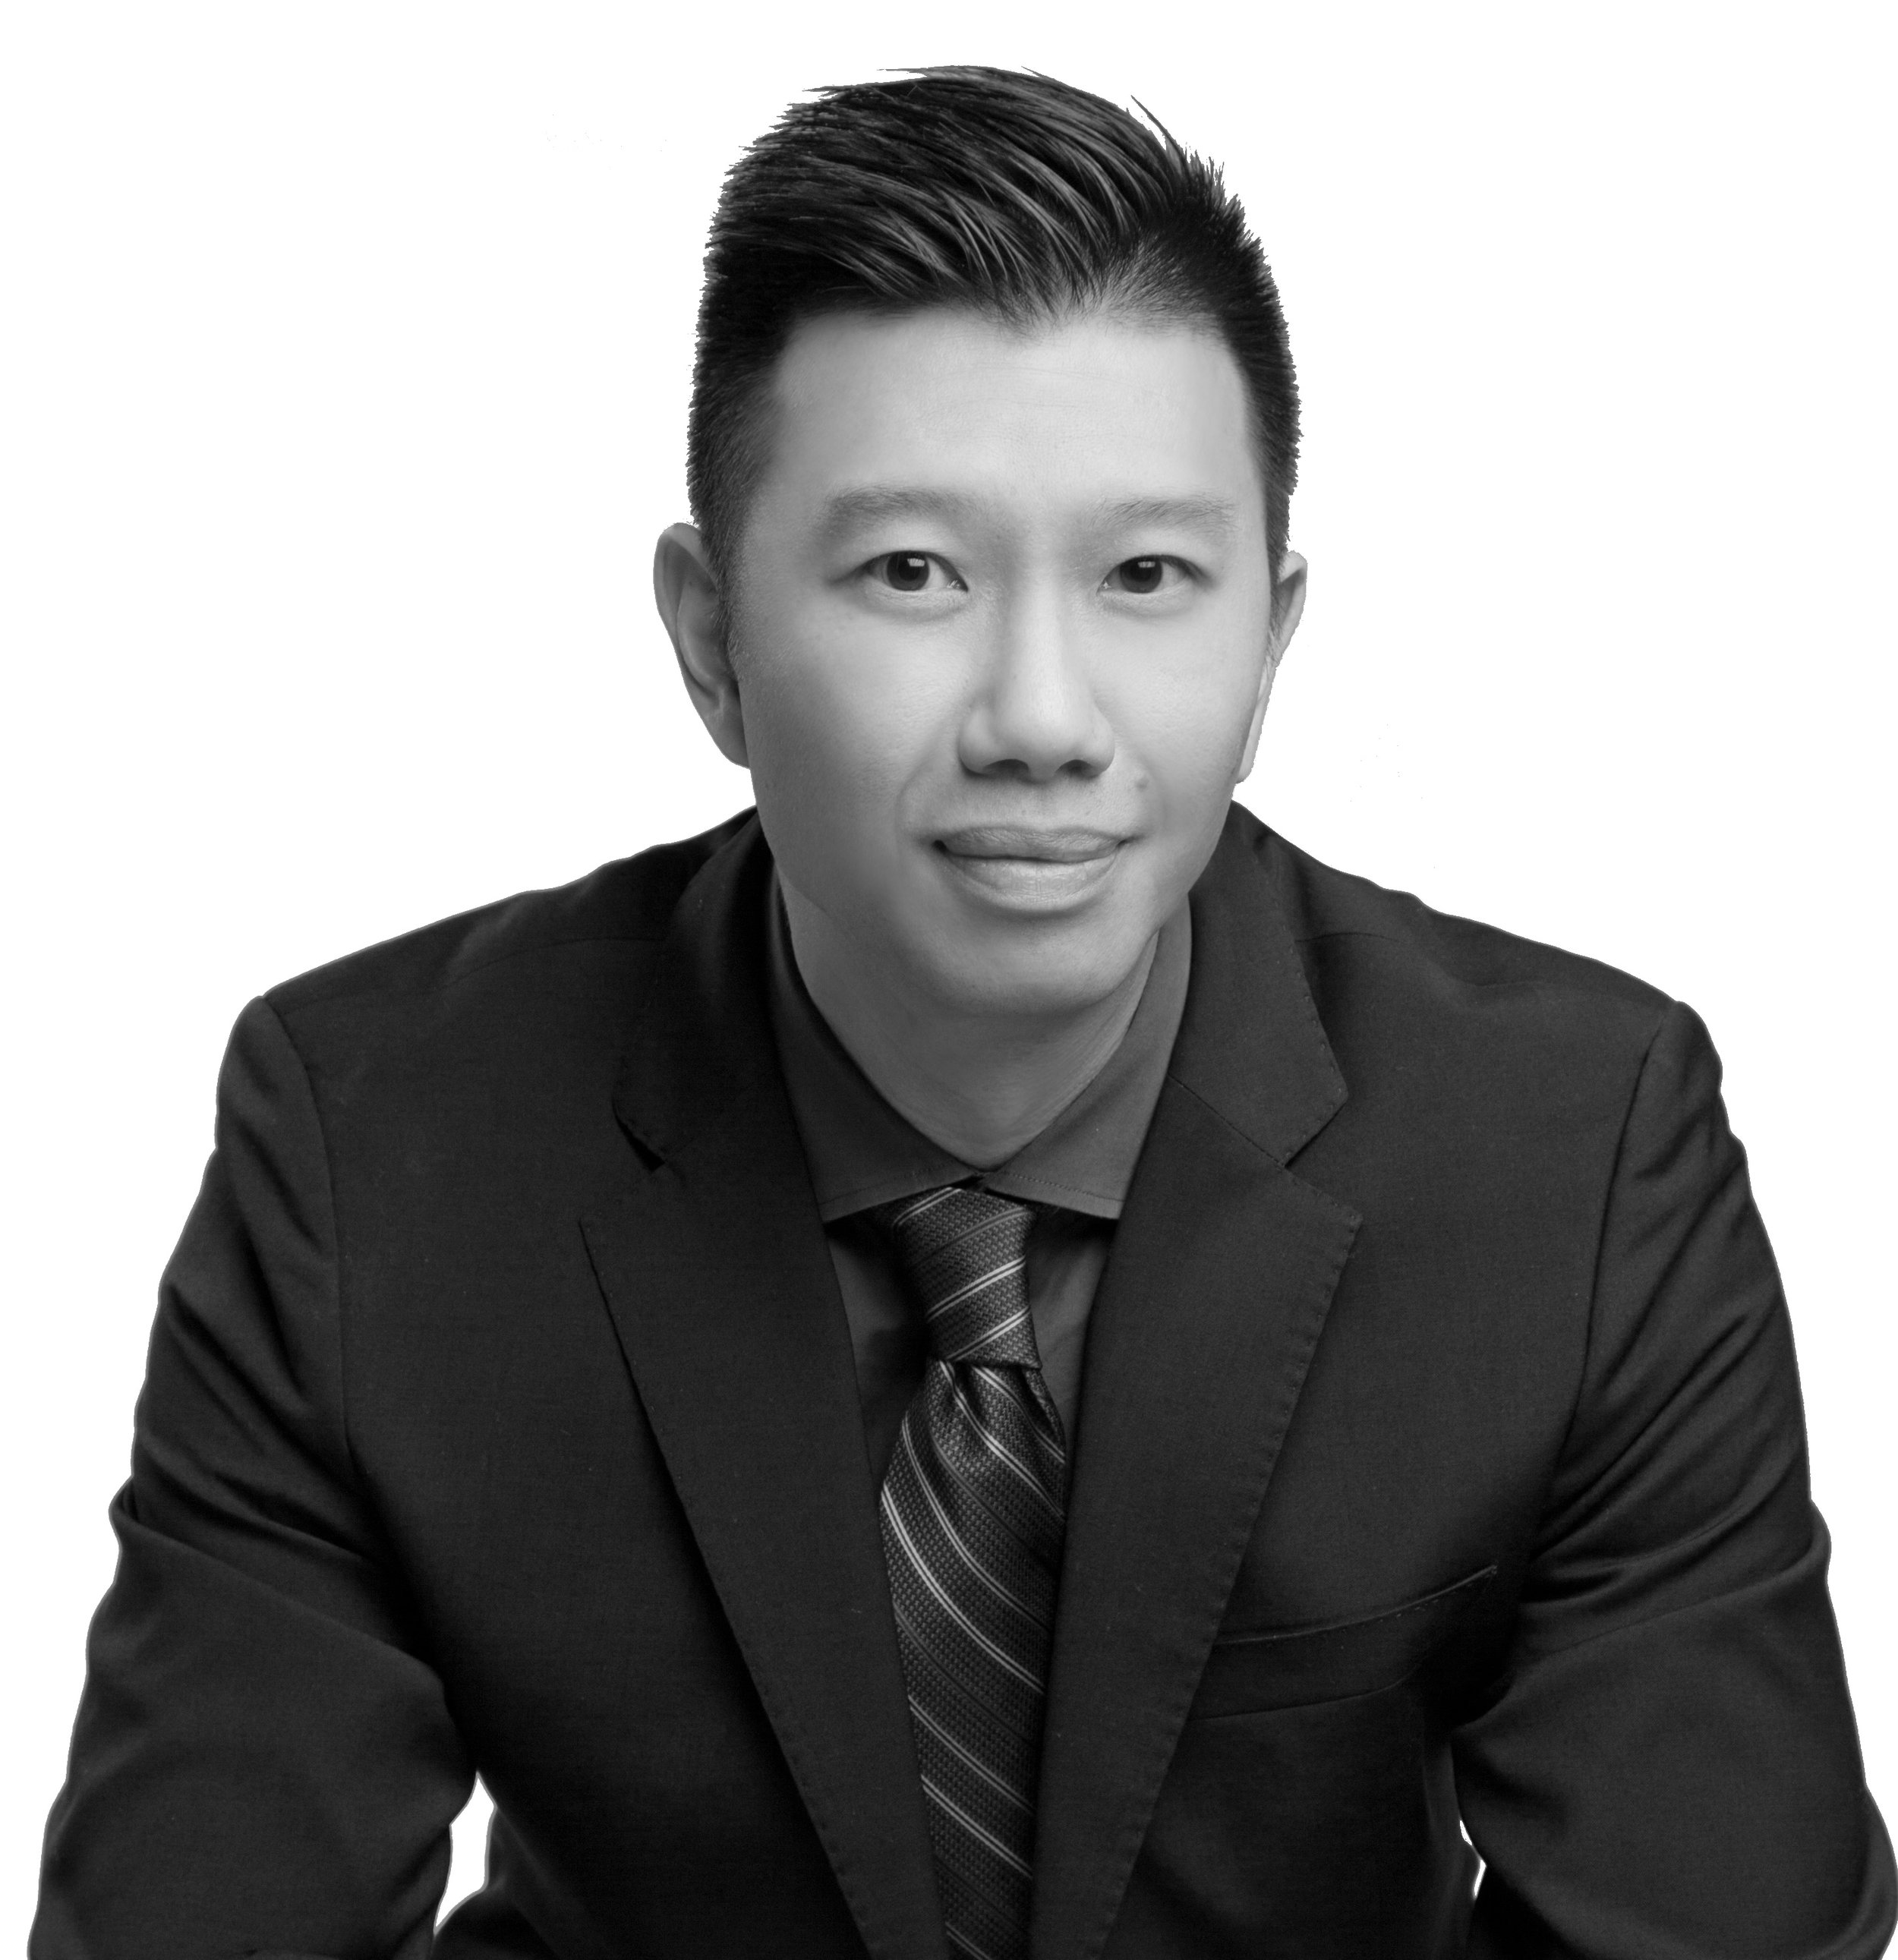 - Simon Kwan is the principal of Conviare Consultants and Appraisers. He is a designated CRA Appraiser in good standing with the Appraisal Institute of Canada (AIC) since 2005, and is actively involved with the AIC mentorship program as a Mentor providing guidance to Candidates. He keeps abreast to current real estate trends through on-going seminars and courses in real estate, and appraisal related materials.Simon and the Conviare Team specializes in comprehensive appraisal consulting services for: complex residential single family dwellings; vacant land; subdivision land; acreages; strata apartments and townhomes; mixed use single family; luxury homes; relocations; hobby farms; unique properties; new construction; and renovation properties.AIC:https://www.aicanada.ca/appraisers/904020